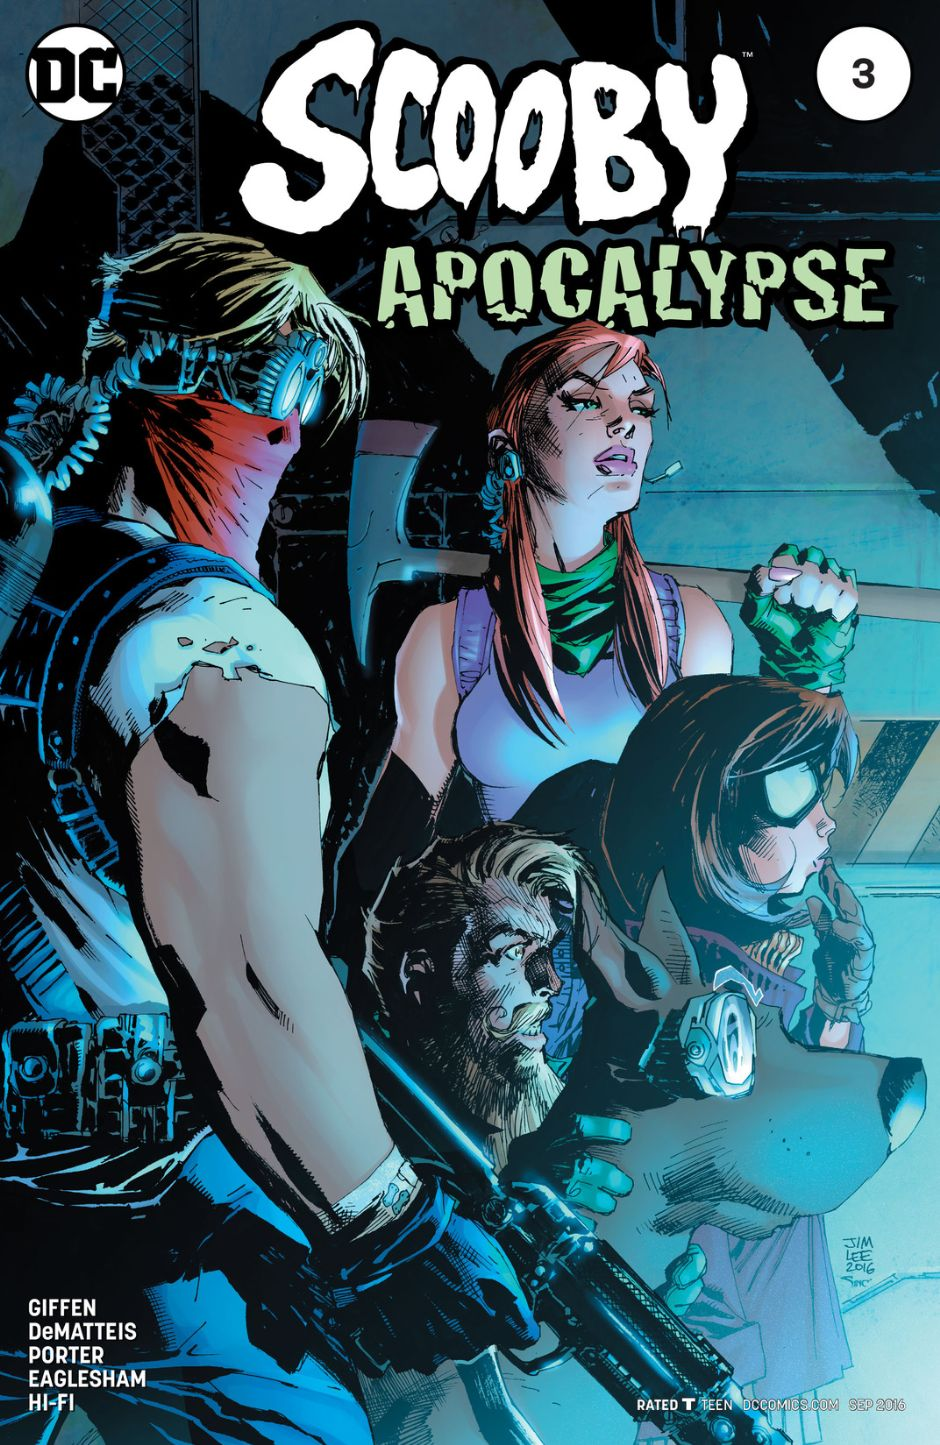 Scooby Apocalypse Vol 1 3